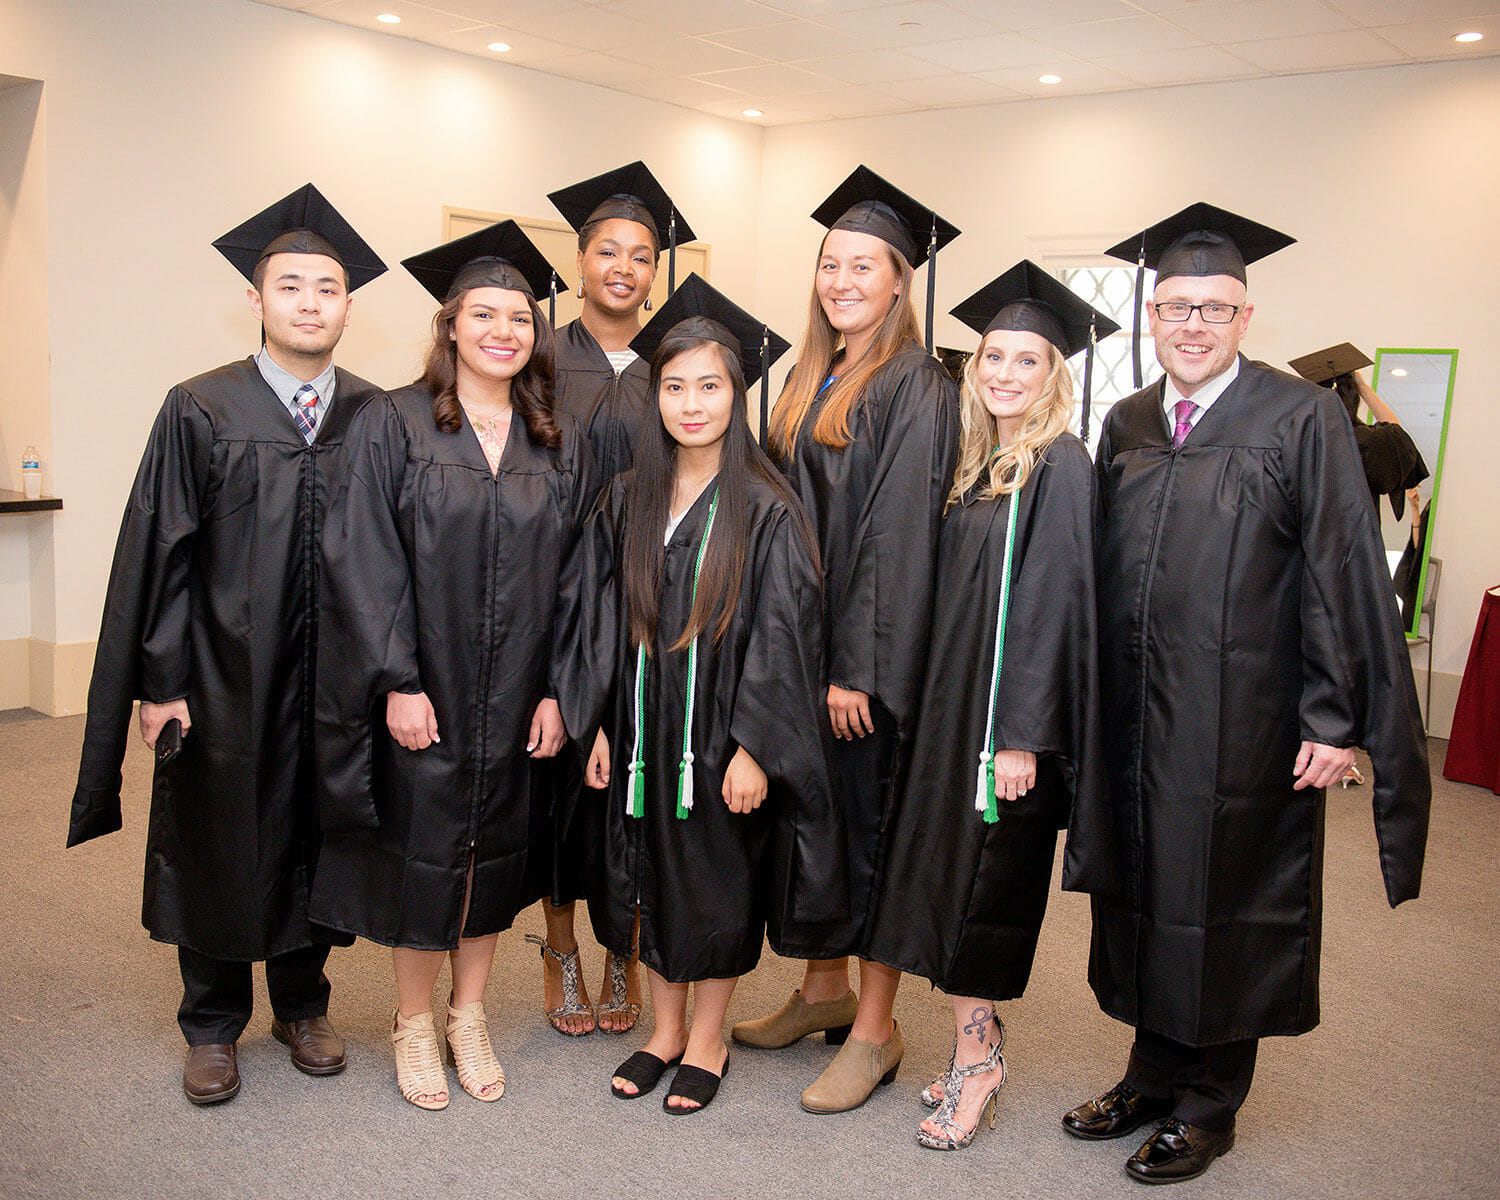 College of Allied Health Professions and the College of Podiatric Medicine Commencement ceremony was held May 23, 2018.